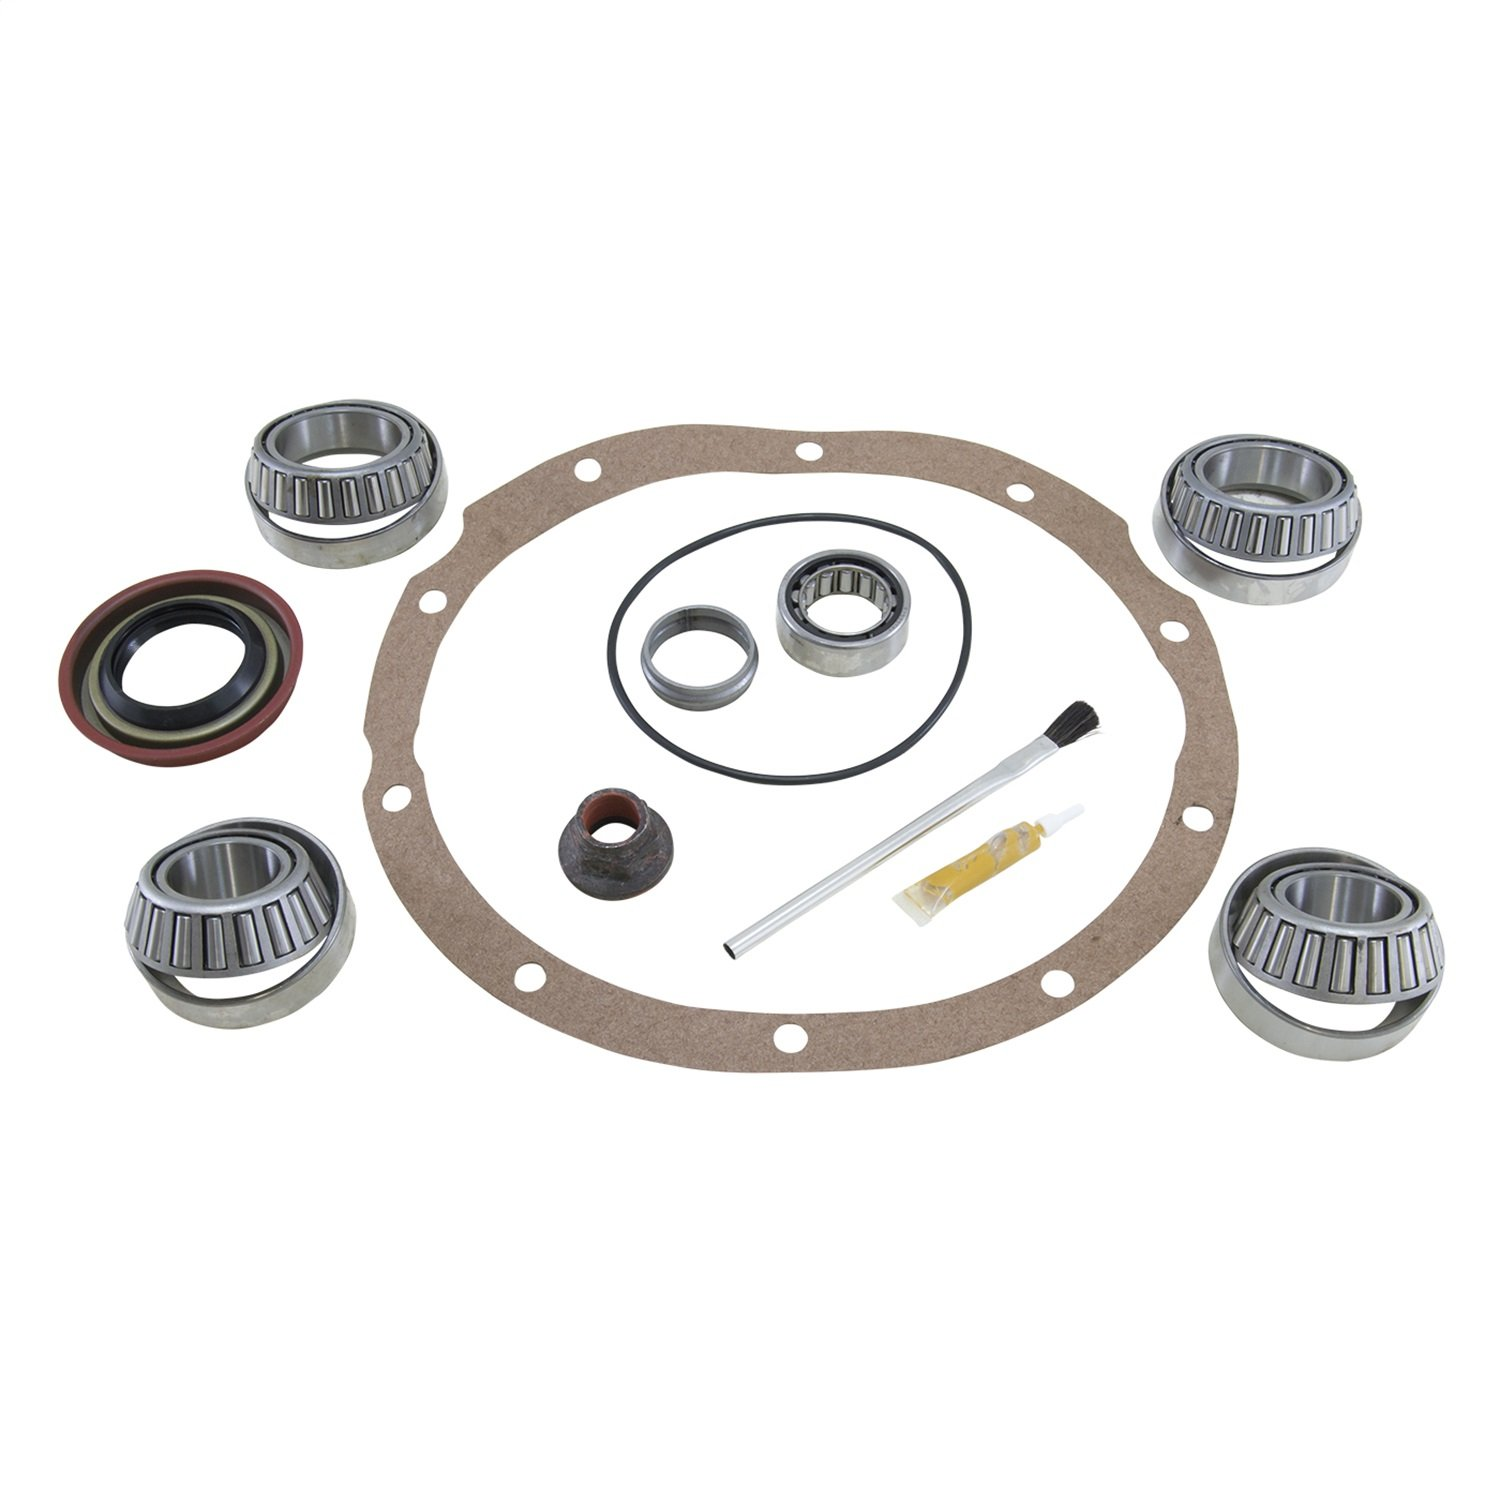 USA Standard Gear (ZBKF9-A) Bearing Kit for Ford 9'' Differential with LM102949 Carrier Bearing